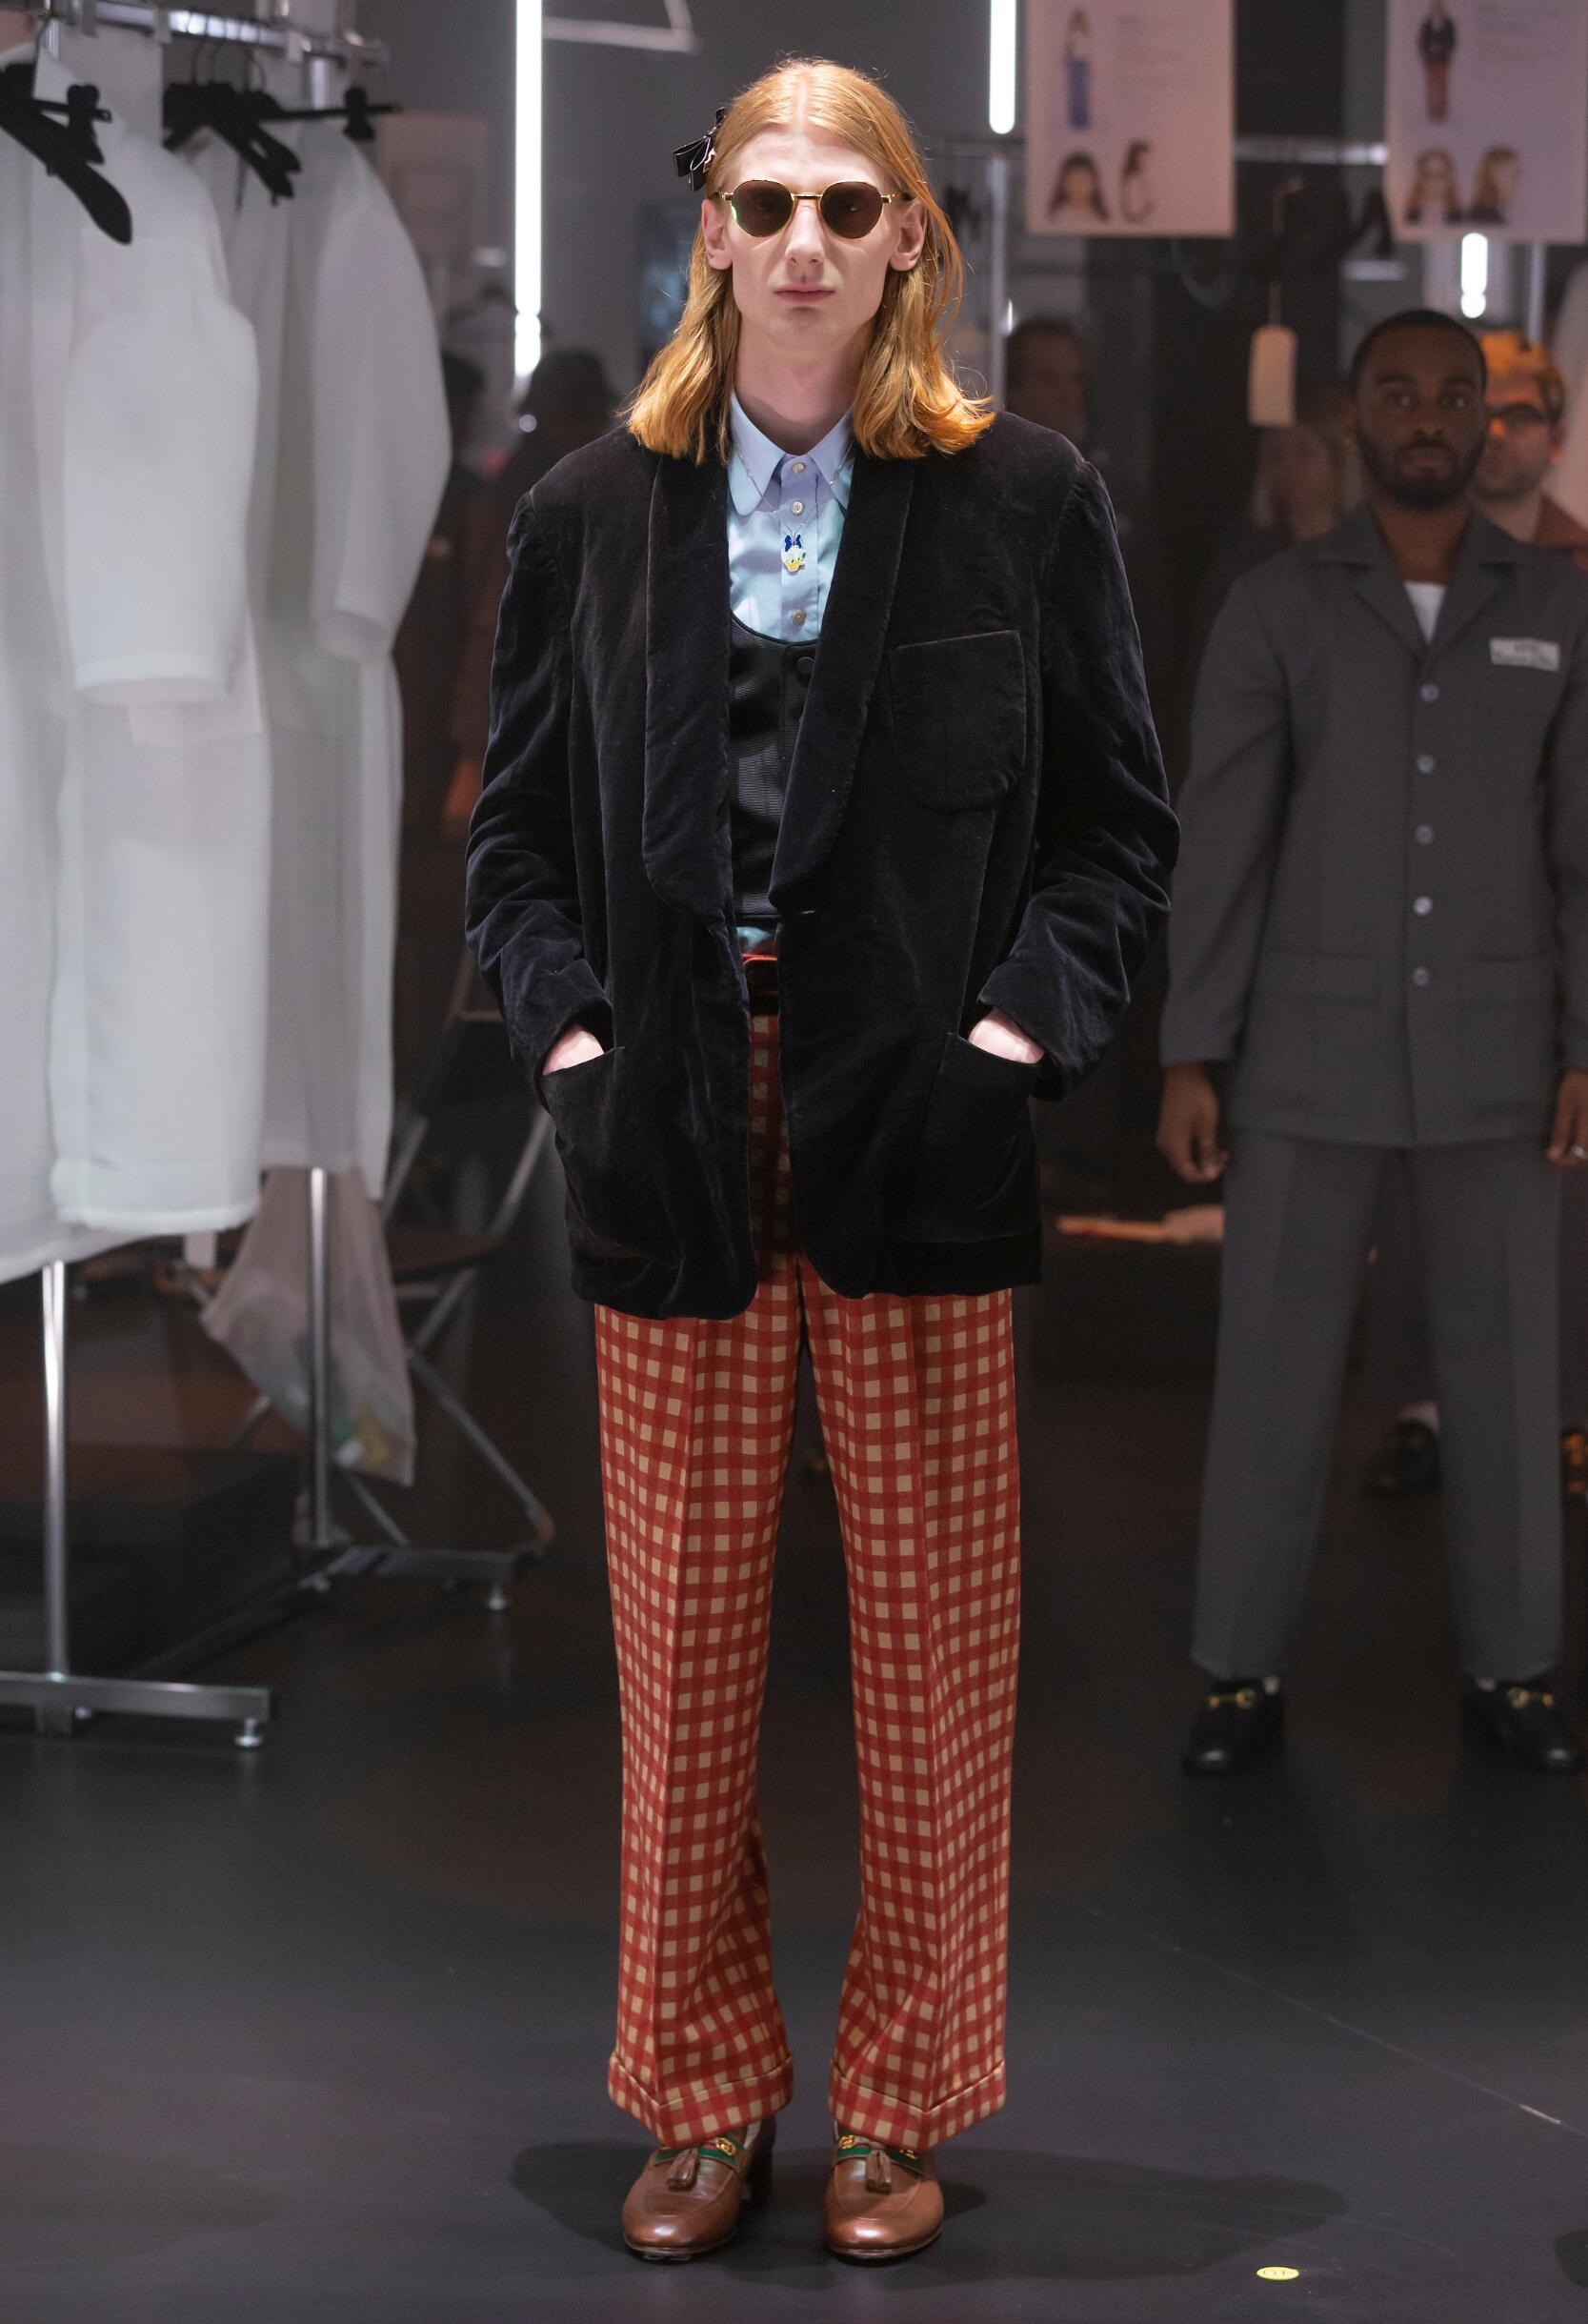 Gucci Menswear Collection Trends